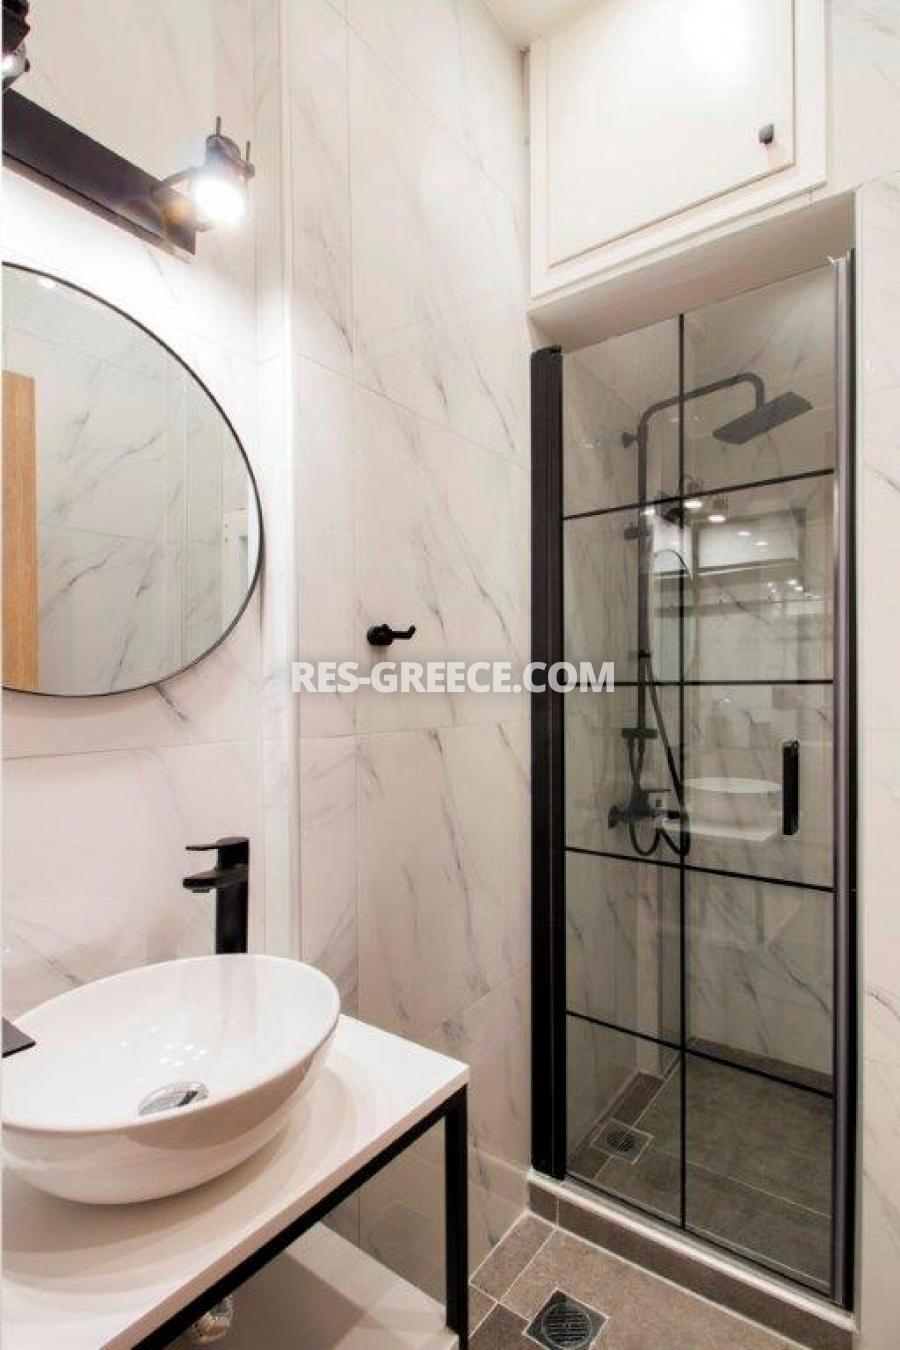 Sokratous 1, Central Macedonia, Greece - apartments in Thessaloniki center for long-term or short-term rent - Photo 17